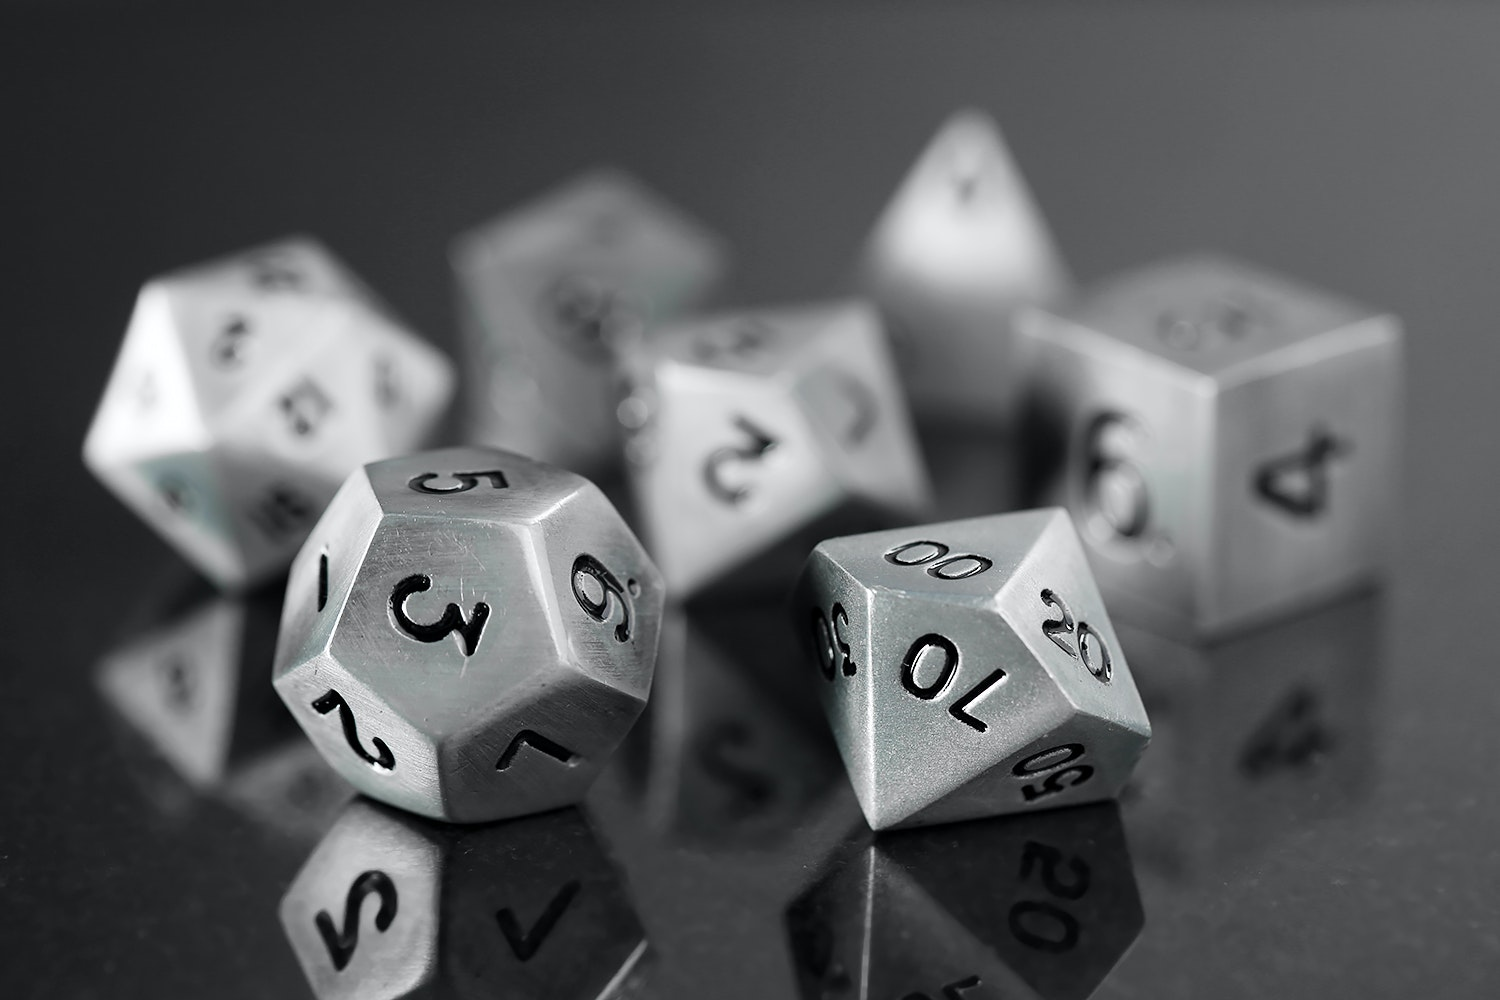 Metallic Antique Silver 16mm Dice Set